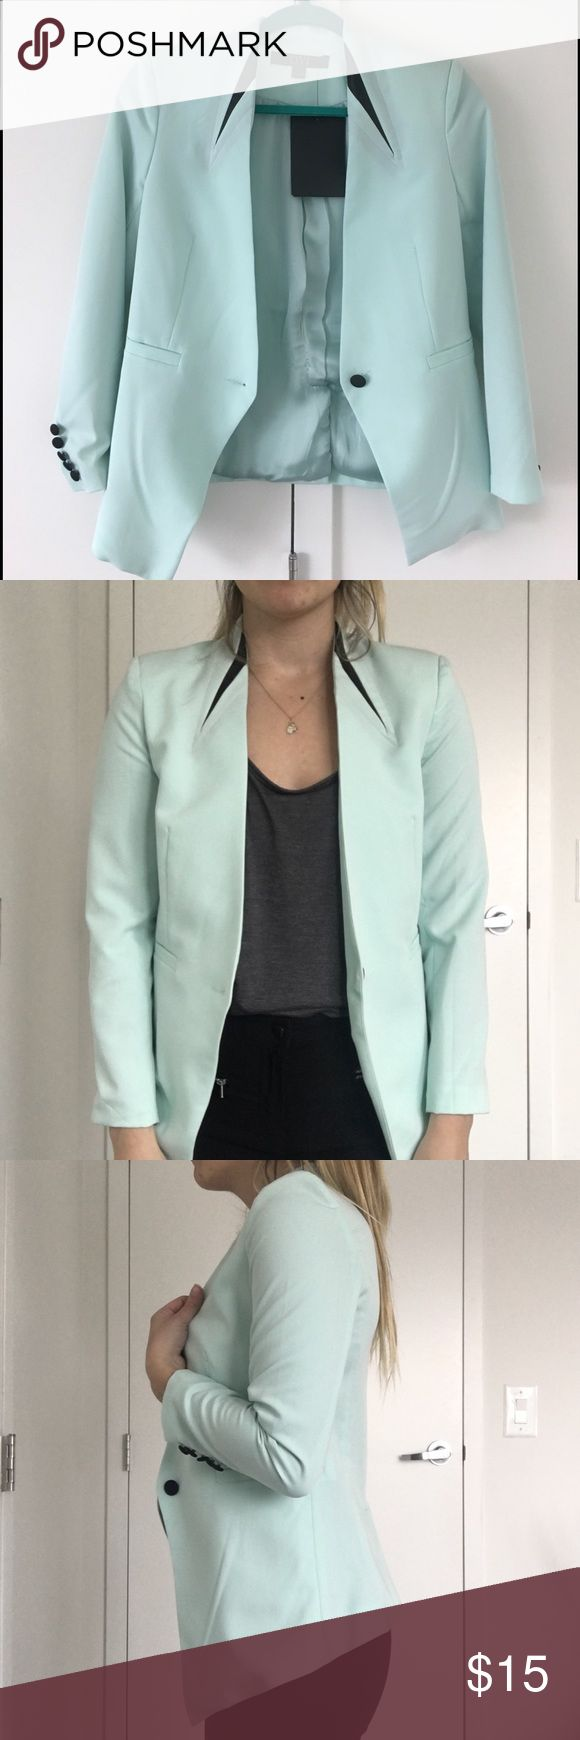 Ovi mint green blazer Brand new mint green blazer. Never worn size small. Fits beautiful and is very light. Necessary Clothing Jackets & Coats Blazers